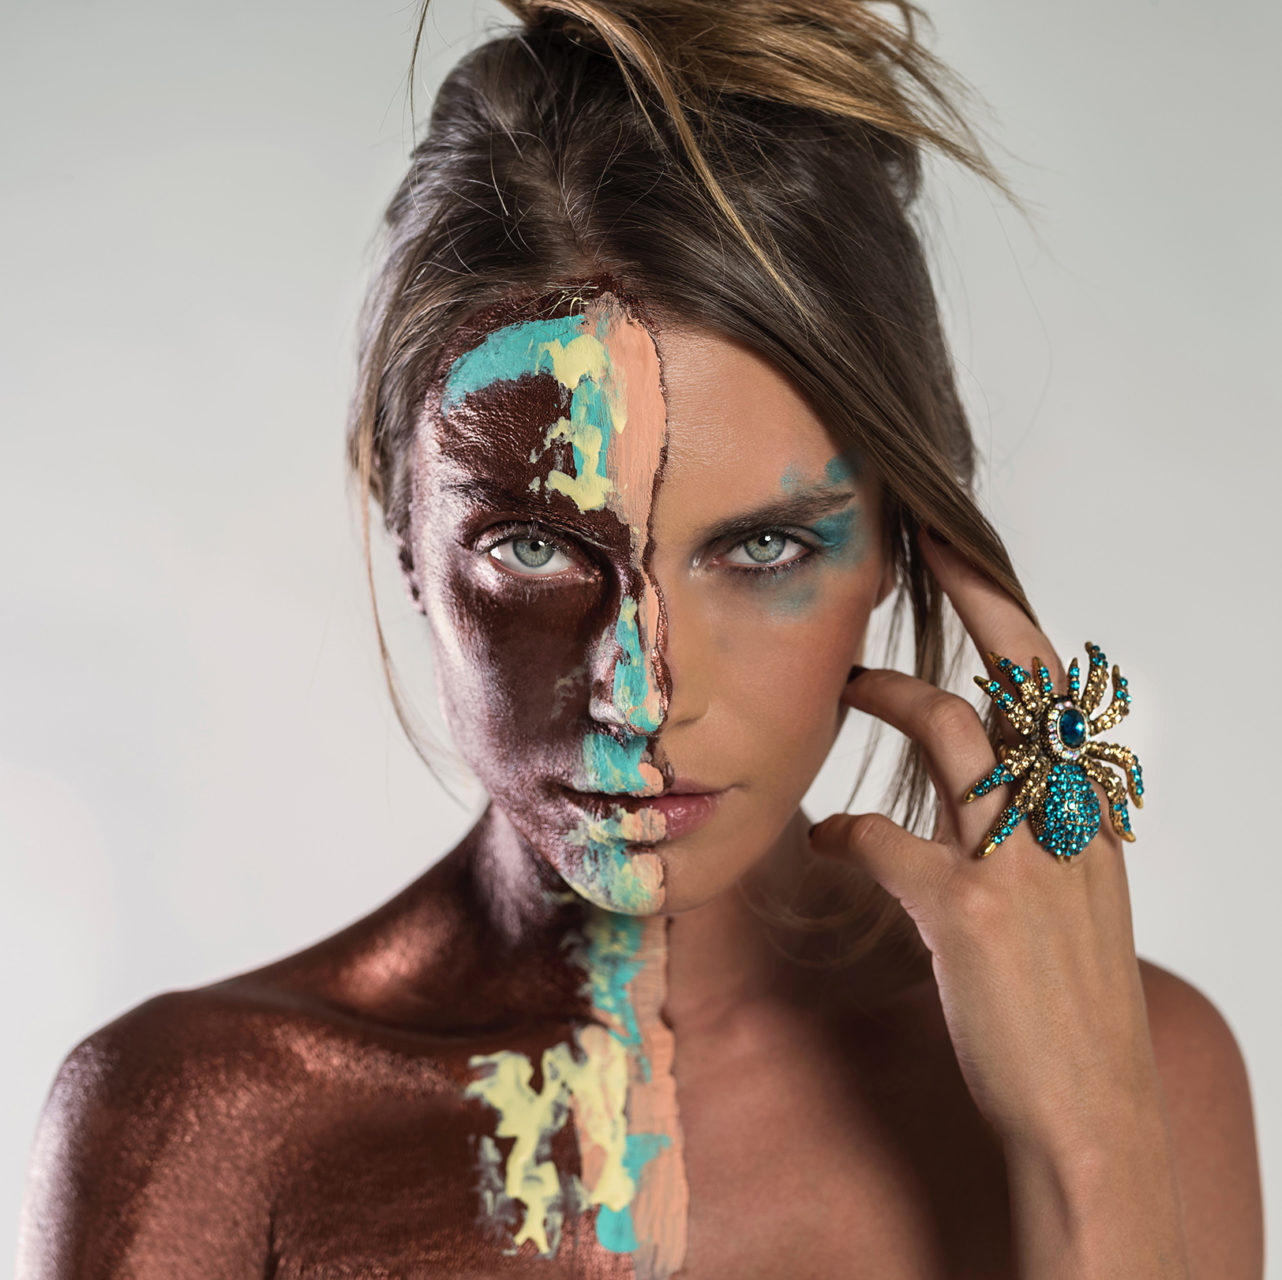 Marina ring Melissa Laskin fashion celebrity stylist fine art body painting